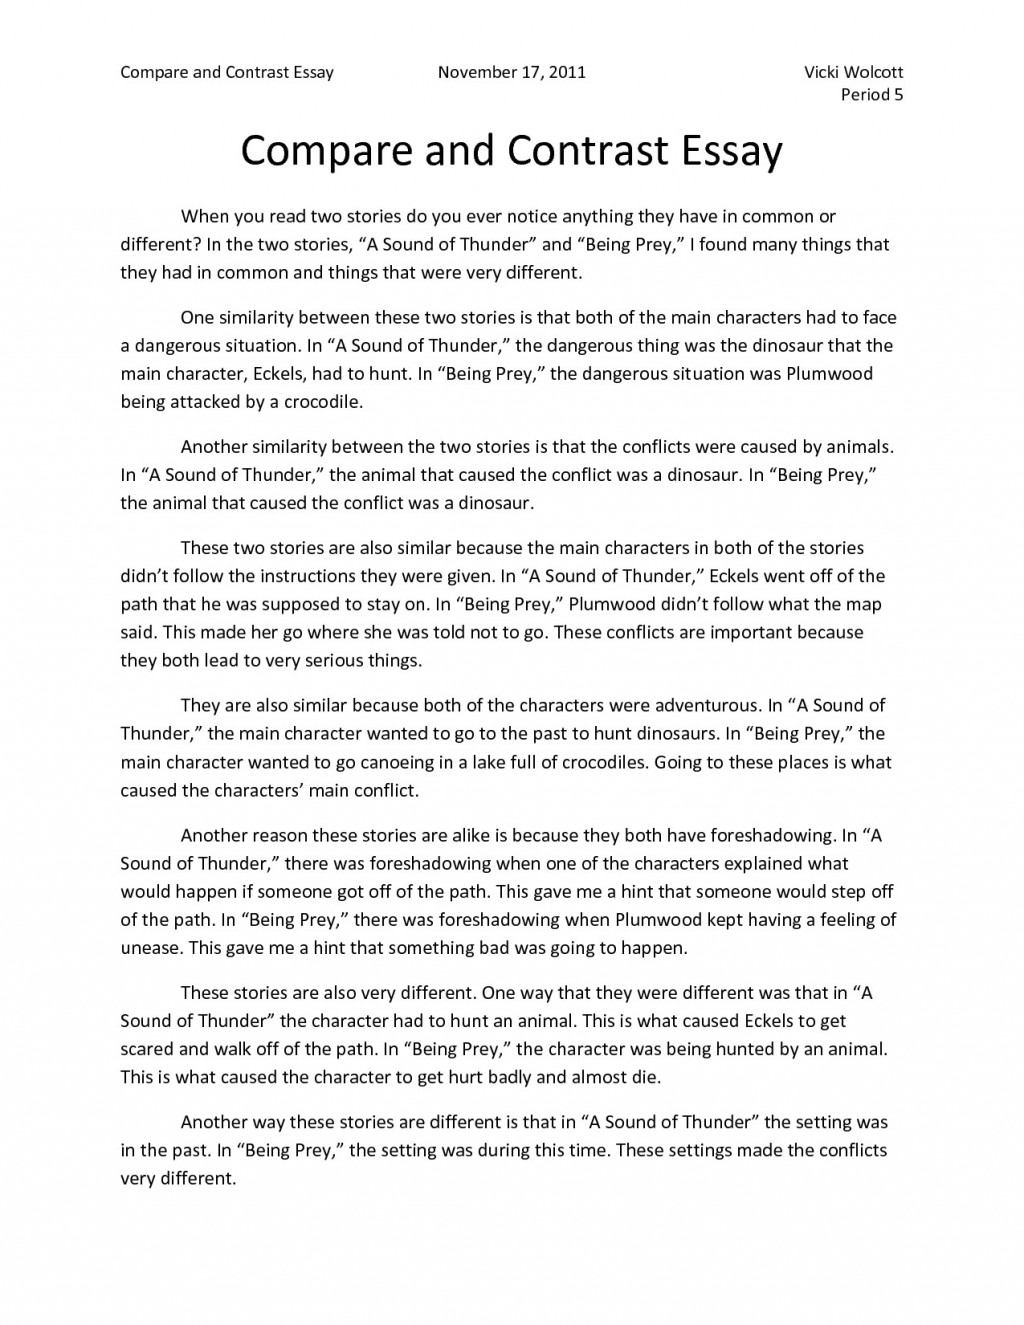 006 Comparing And Contrasting Essay Example Satire Examples Of Comparison Contrast Essays Com How To Write Outstanding A Compare Block Format Thesis Introduction Paragraph Large